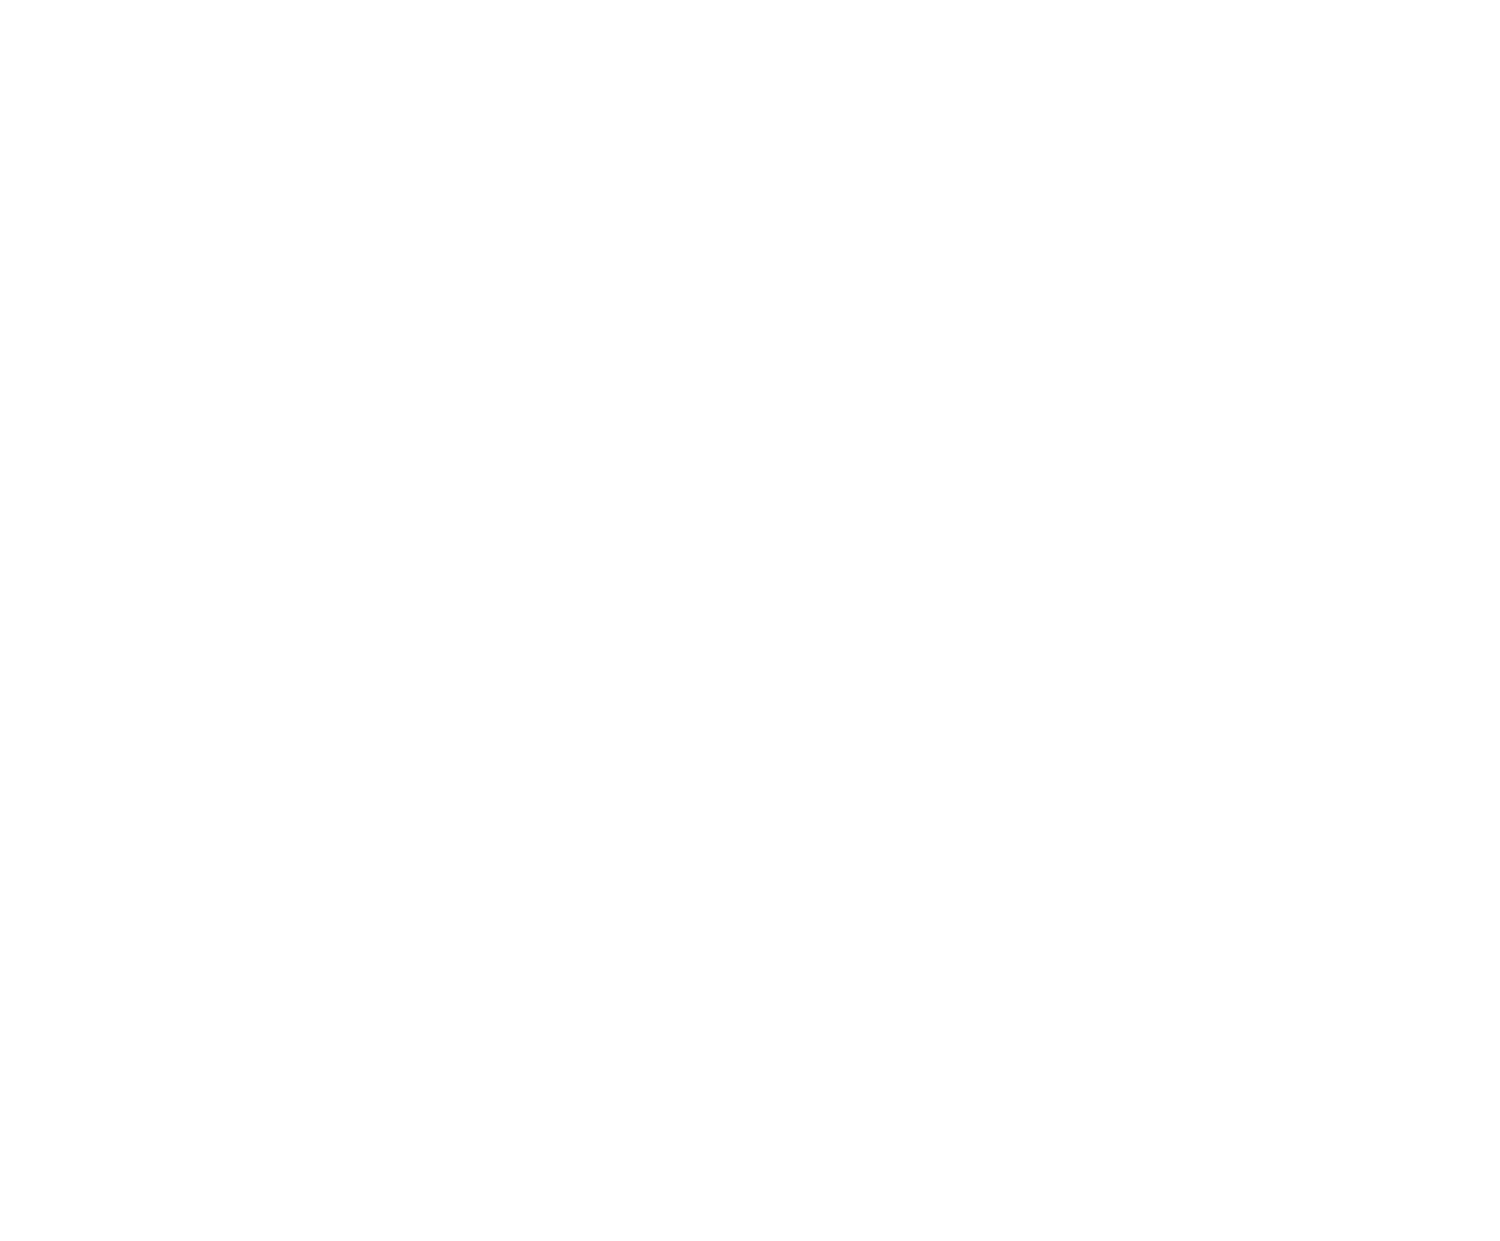 Beautiful Happy Reasons